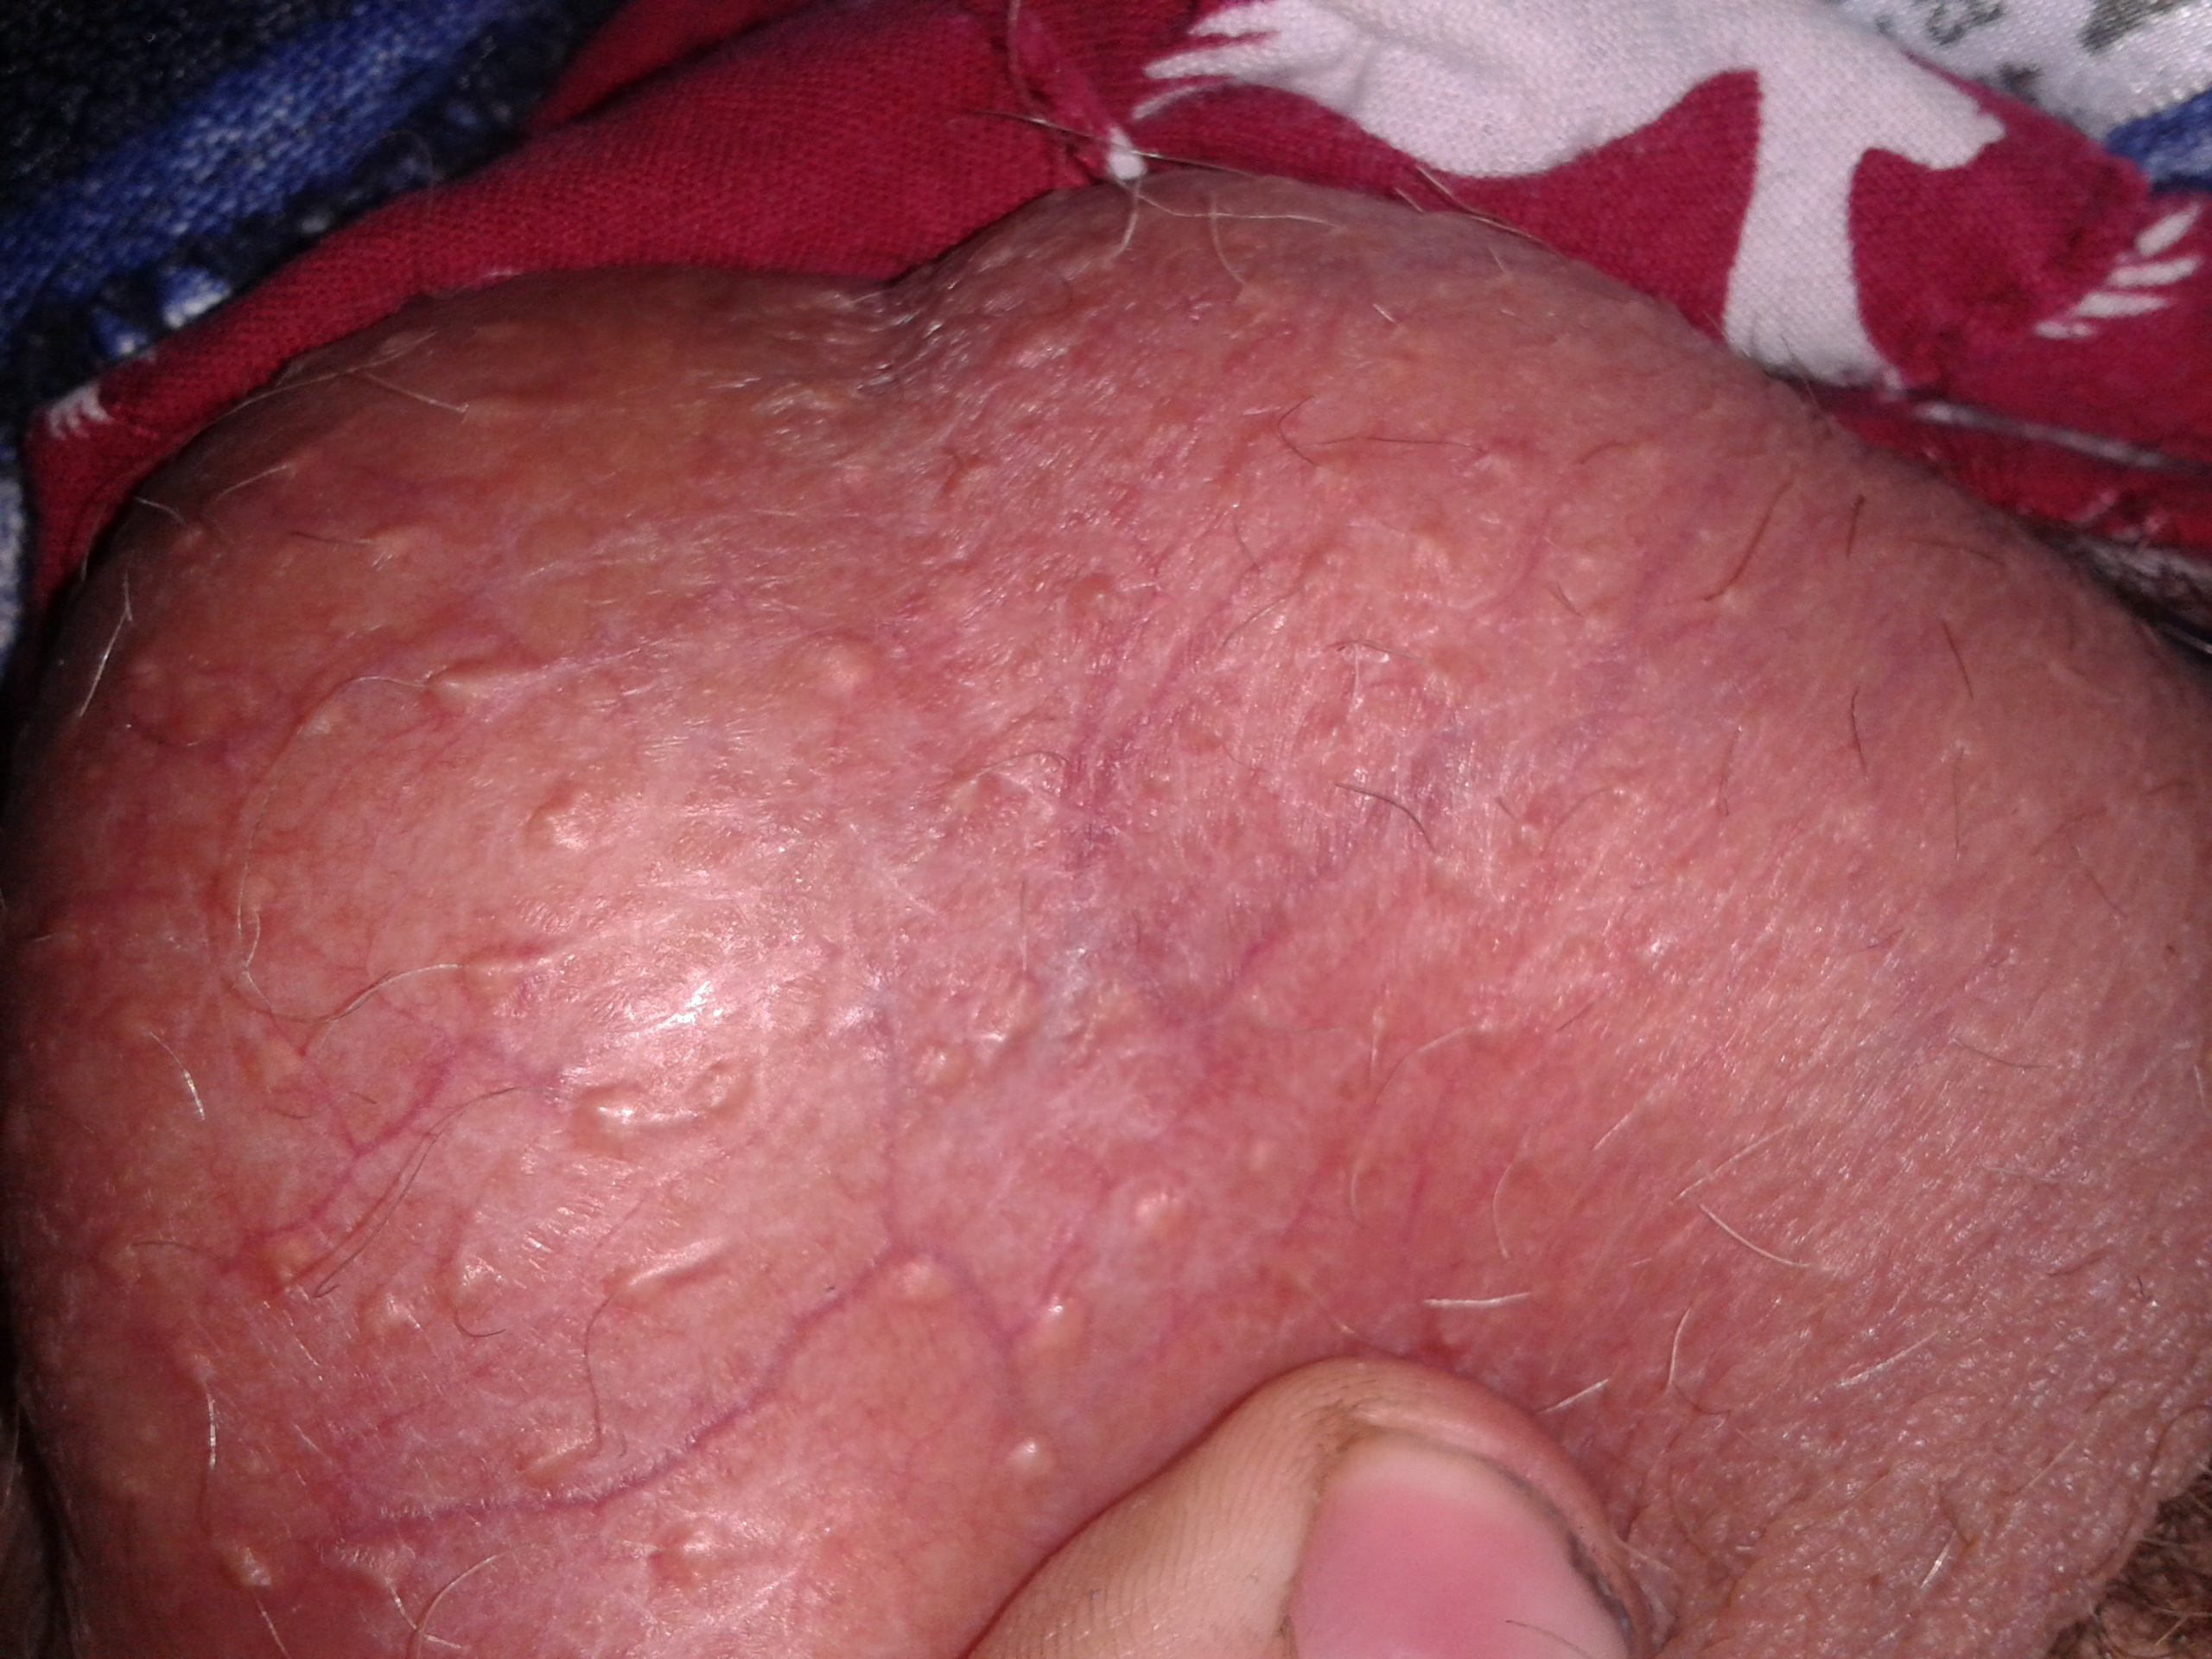 Zits On My Penis 14